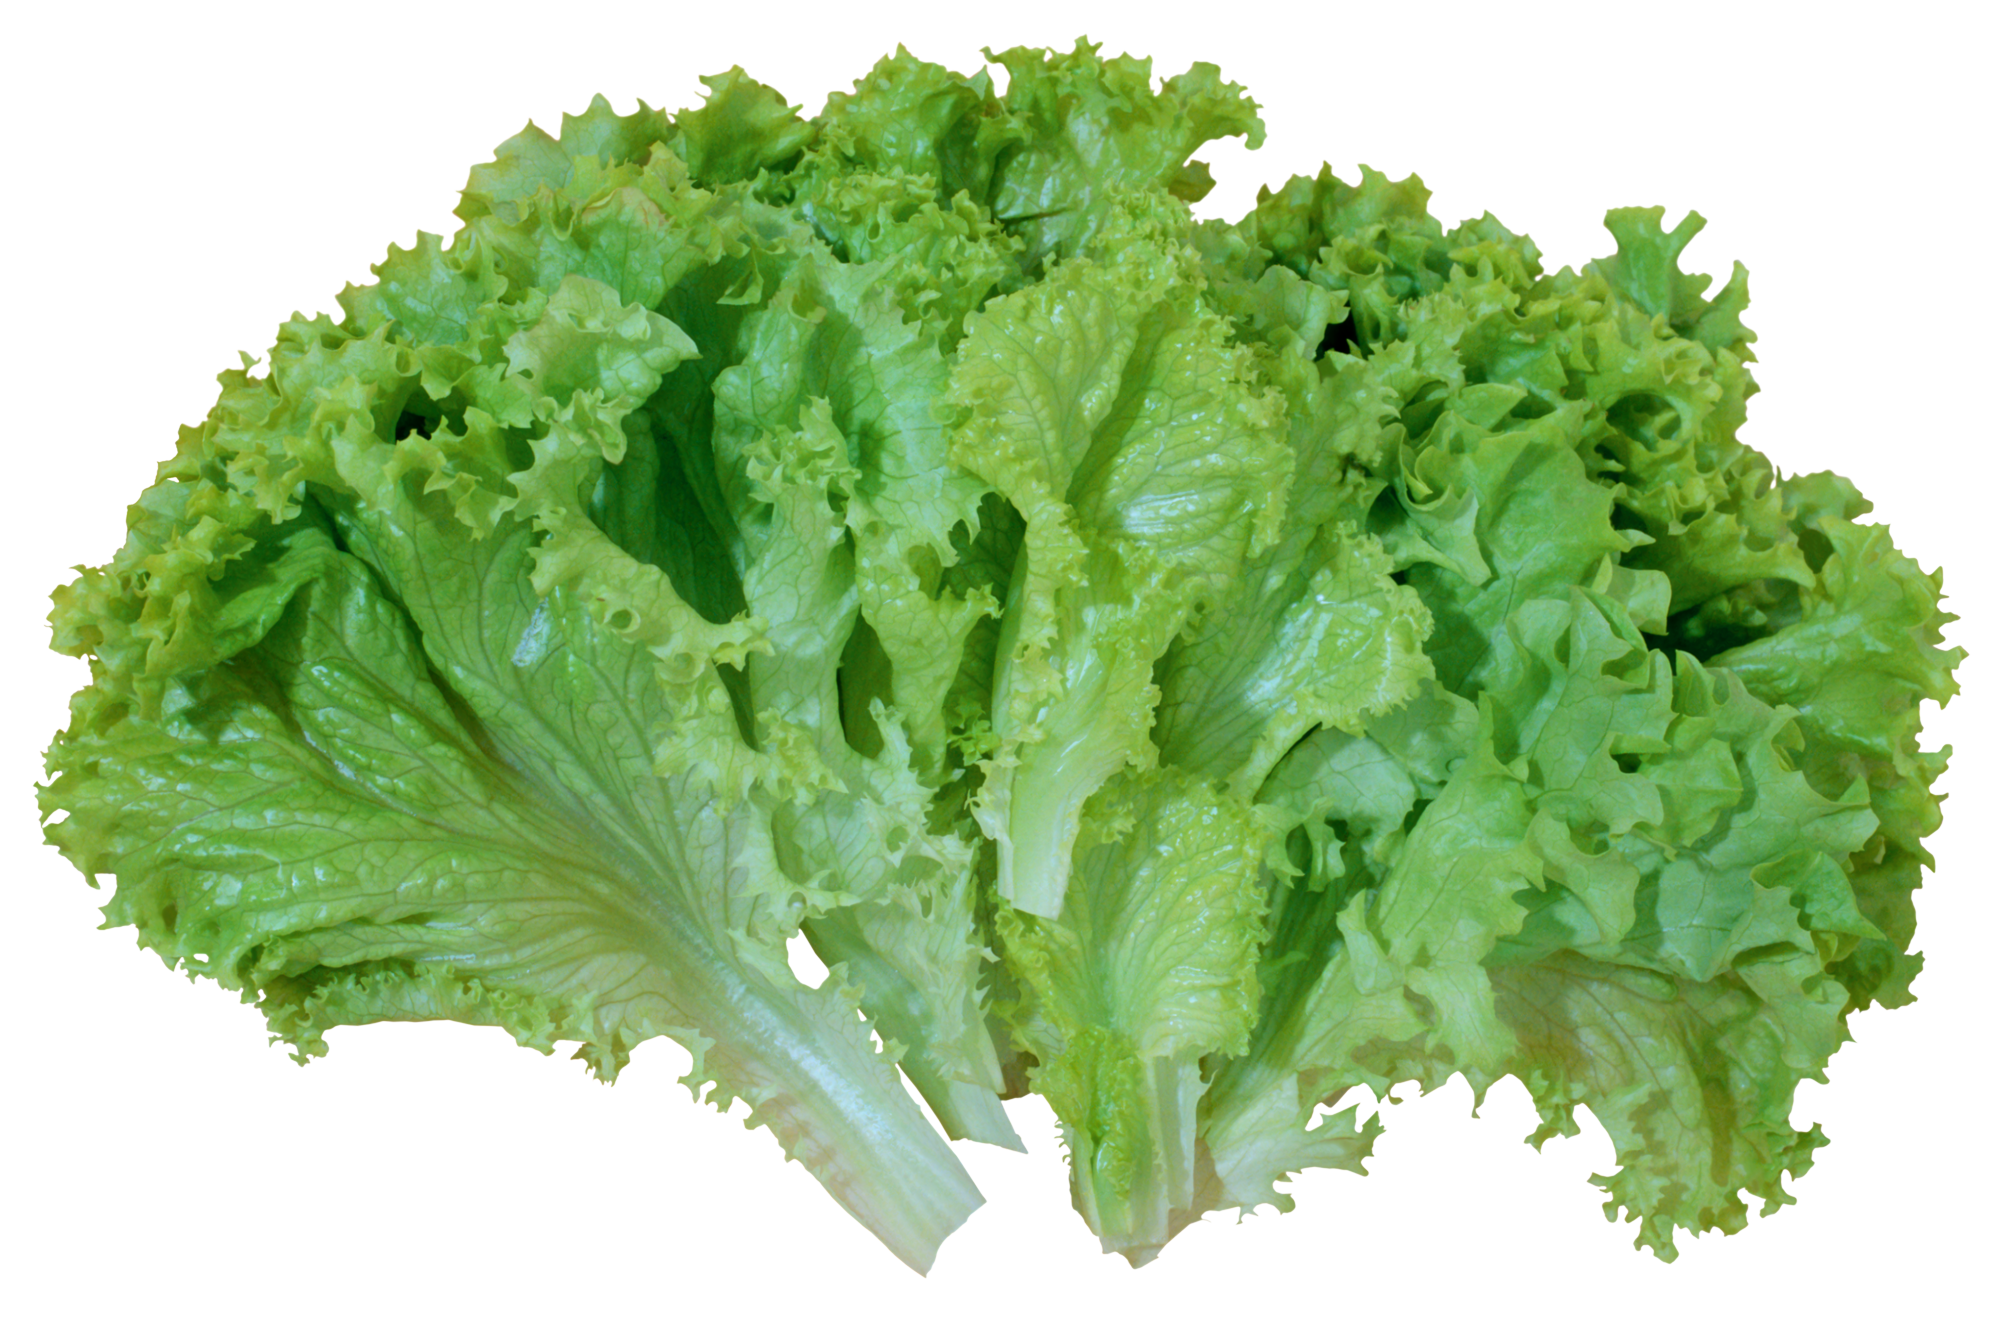 Lettuce cartoon png. Green salad picture gallery